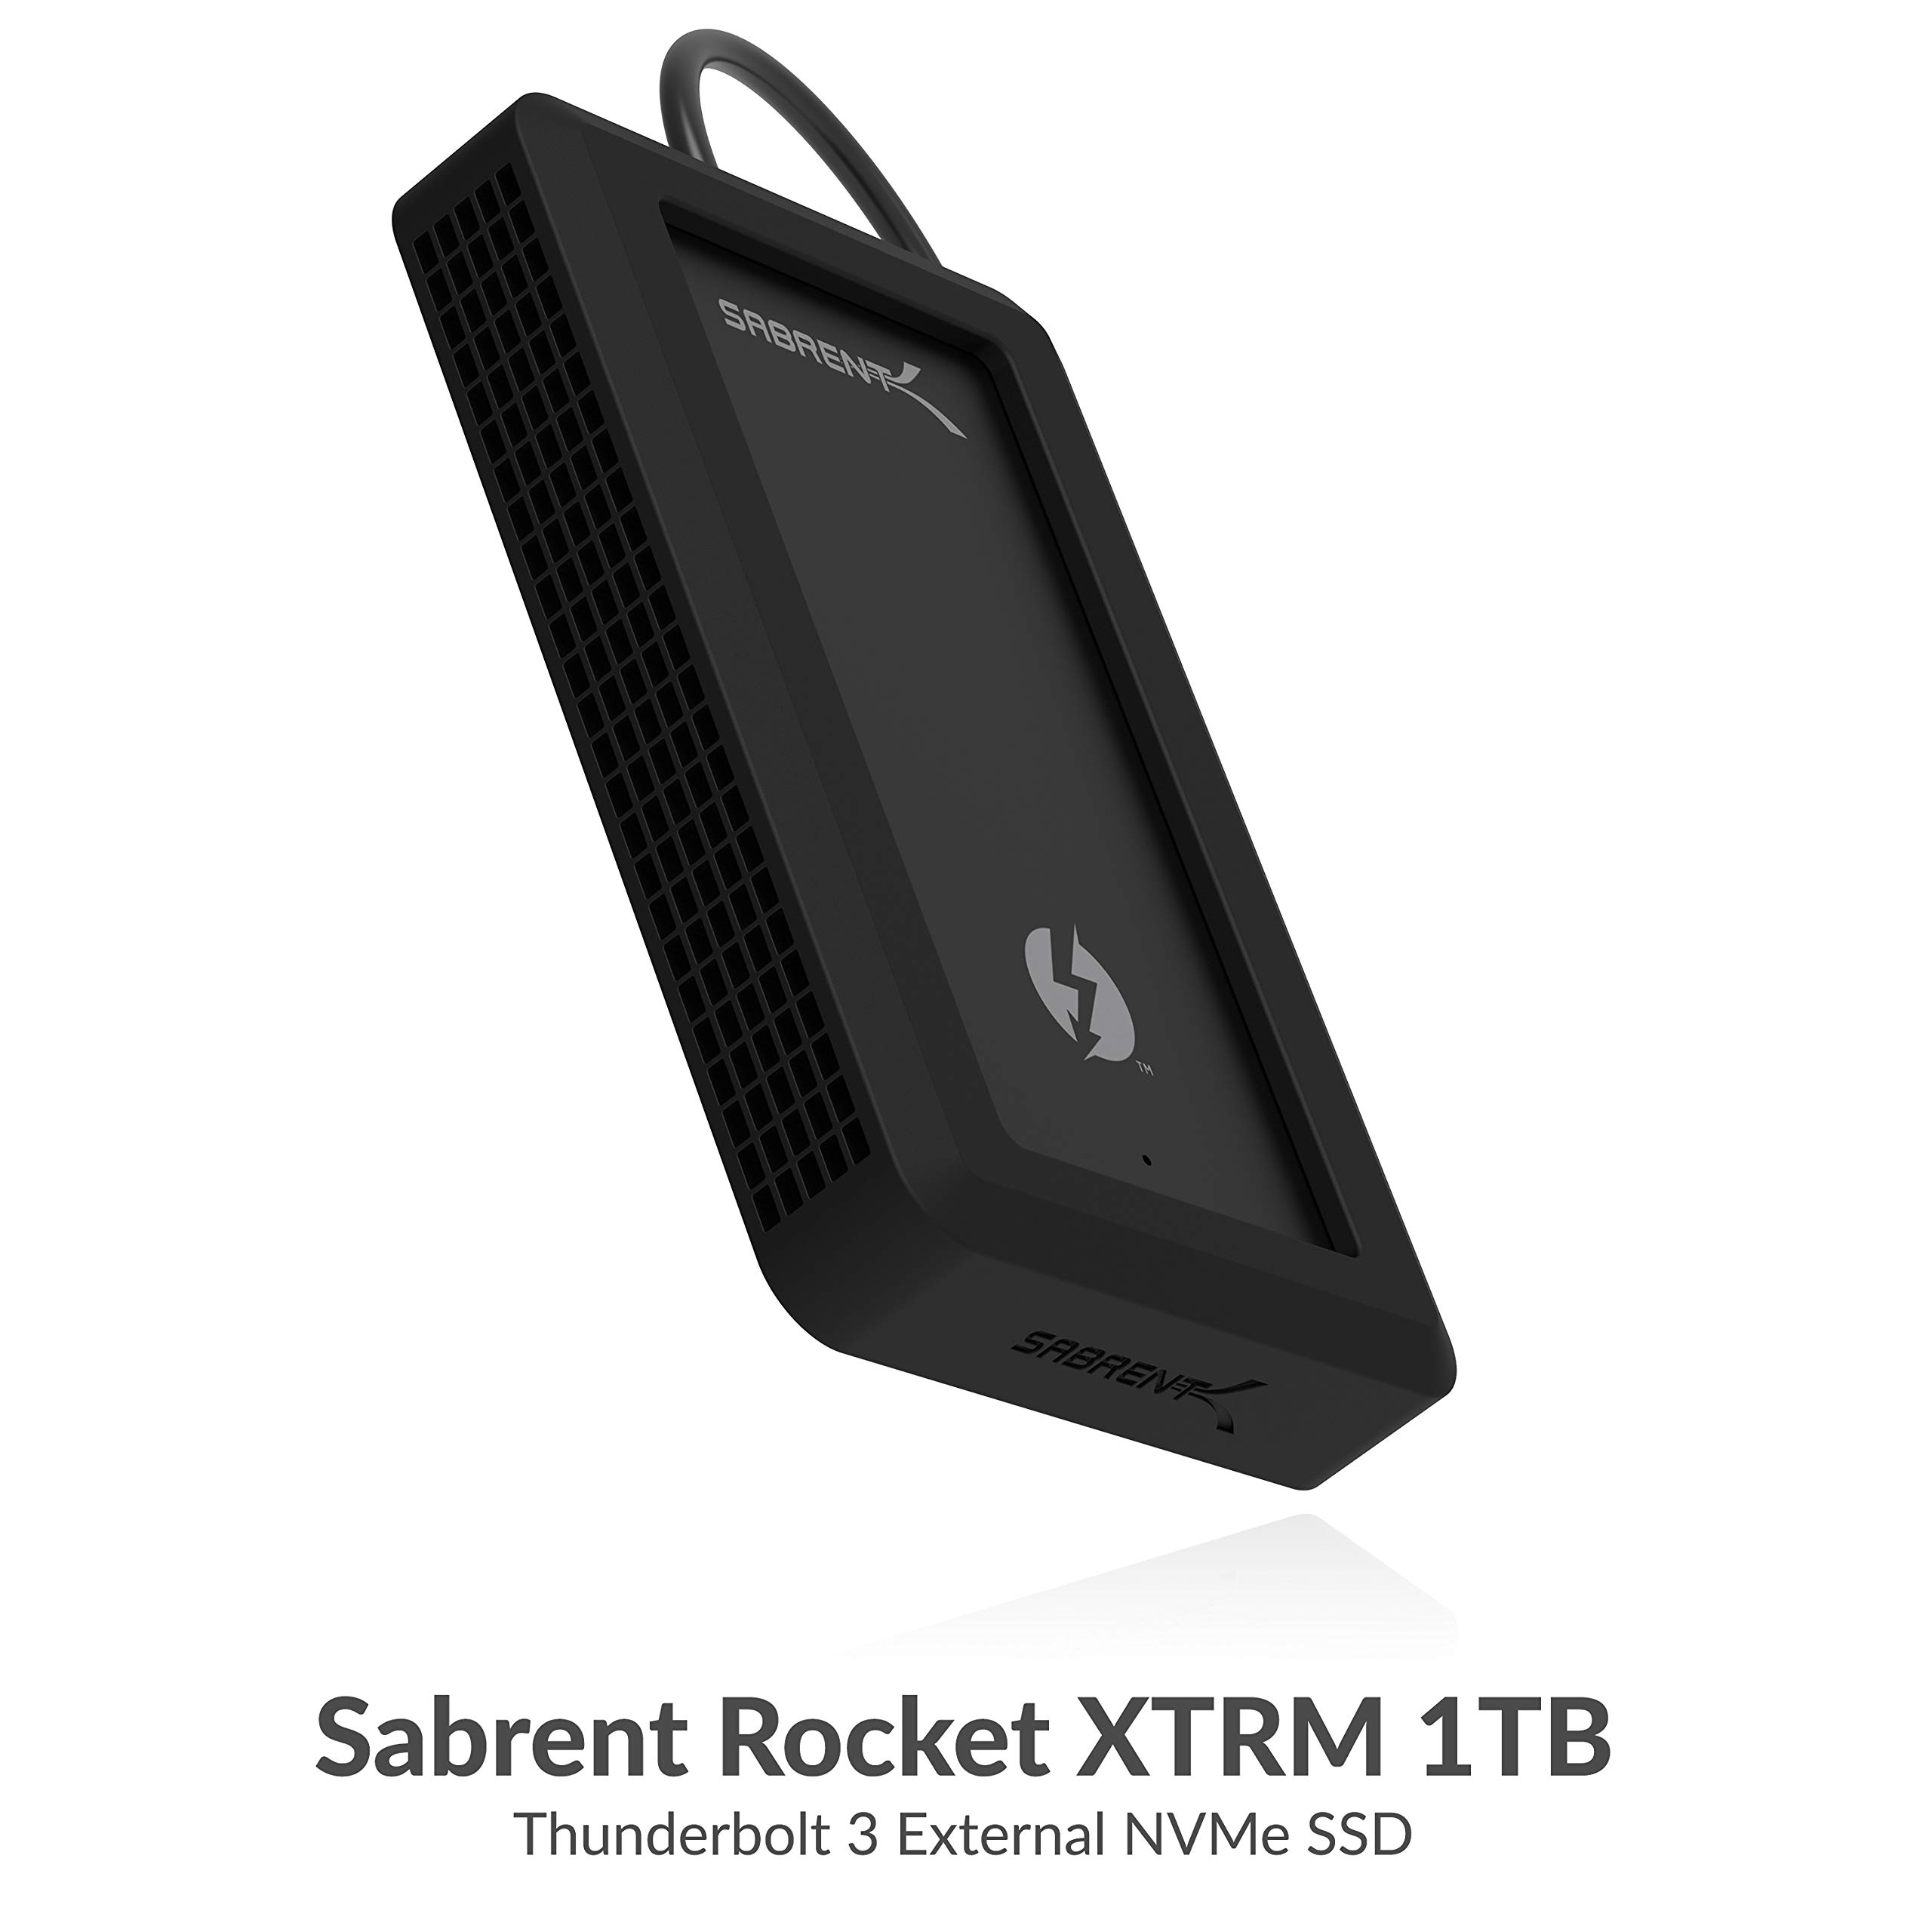 Sabrent Rocket XTRM 1TB Thunderbolt 3 External Nvme SSD with Bumper Guard(Th-P1TB) by Sabrent (Image #2)